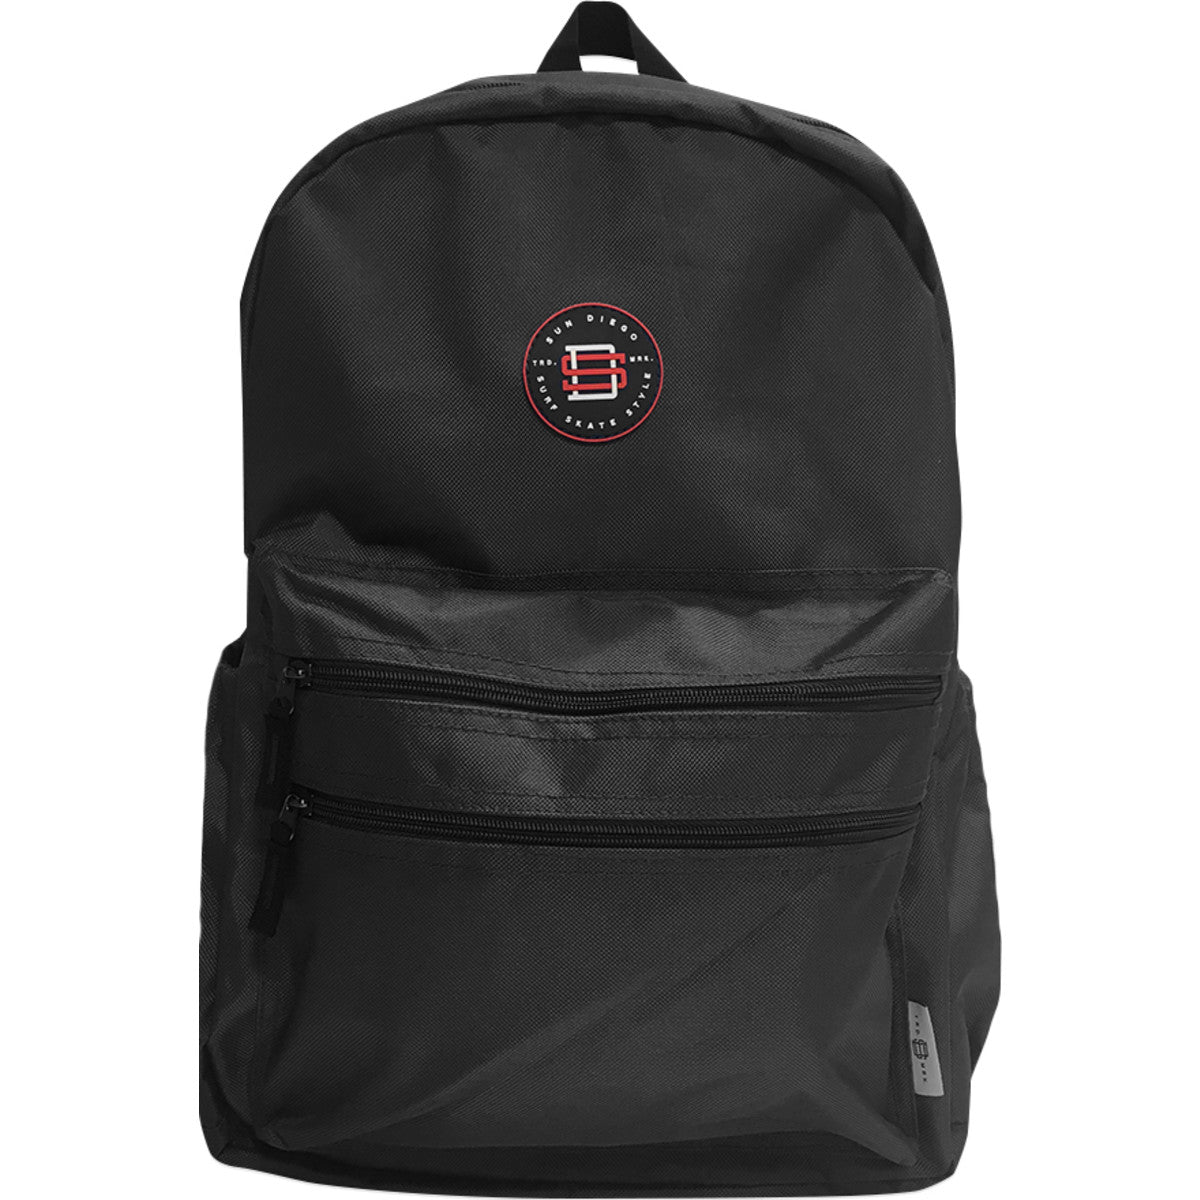 Sun Diego Campus Backpack